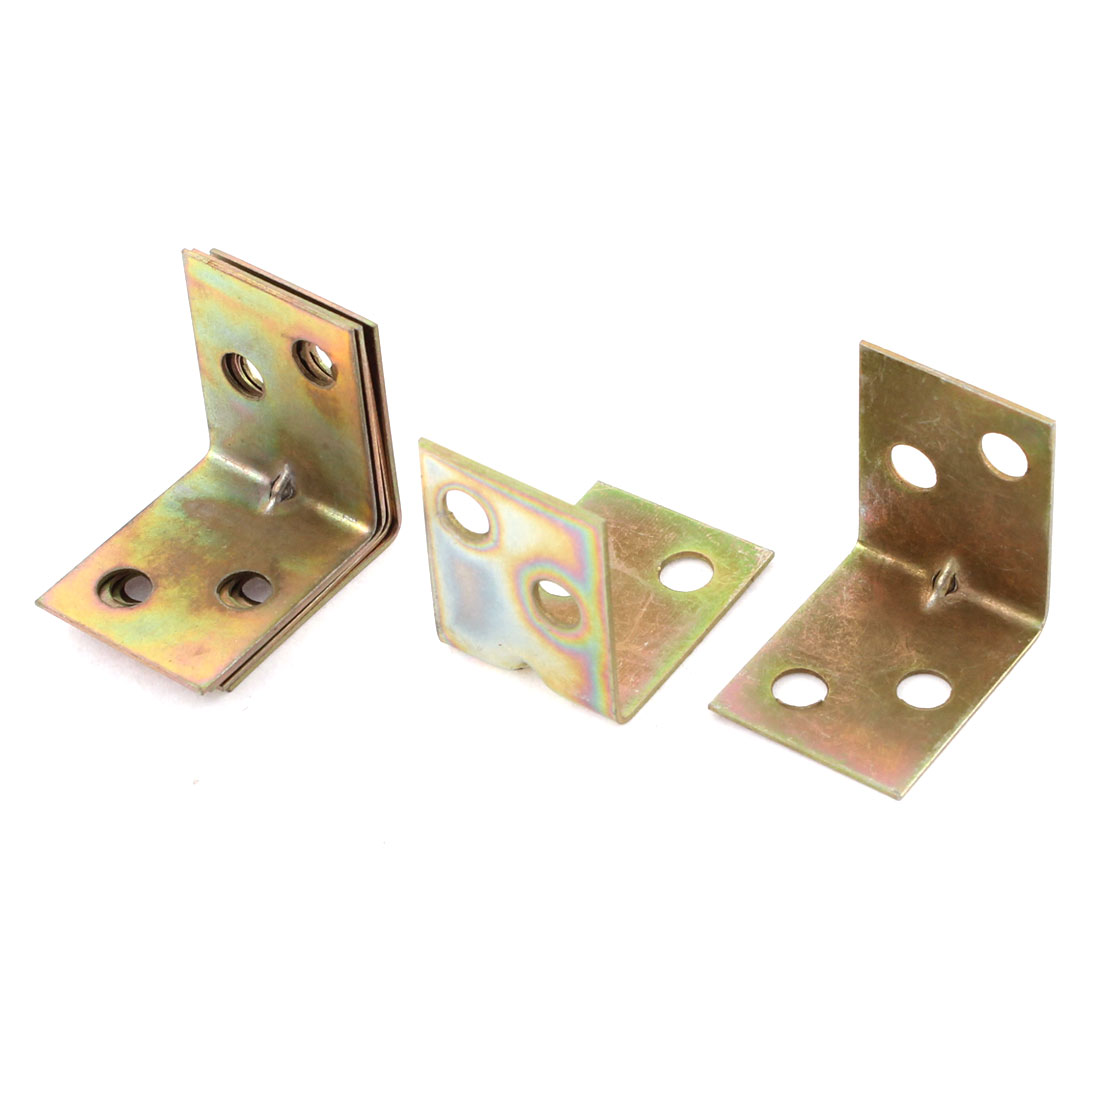 21mmx21mmx16mm Shelf Door 90 Degree 4Hole Corner Angle Brackets Brass Tone 6Pcs